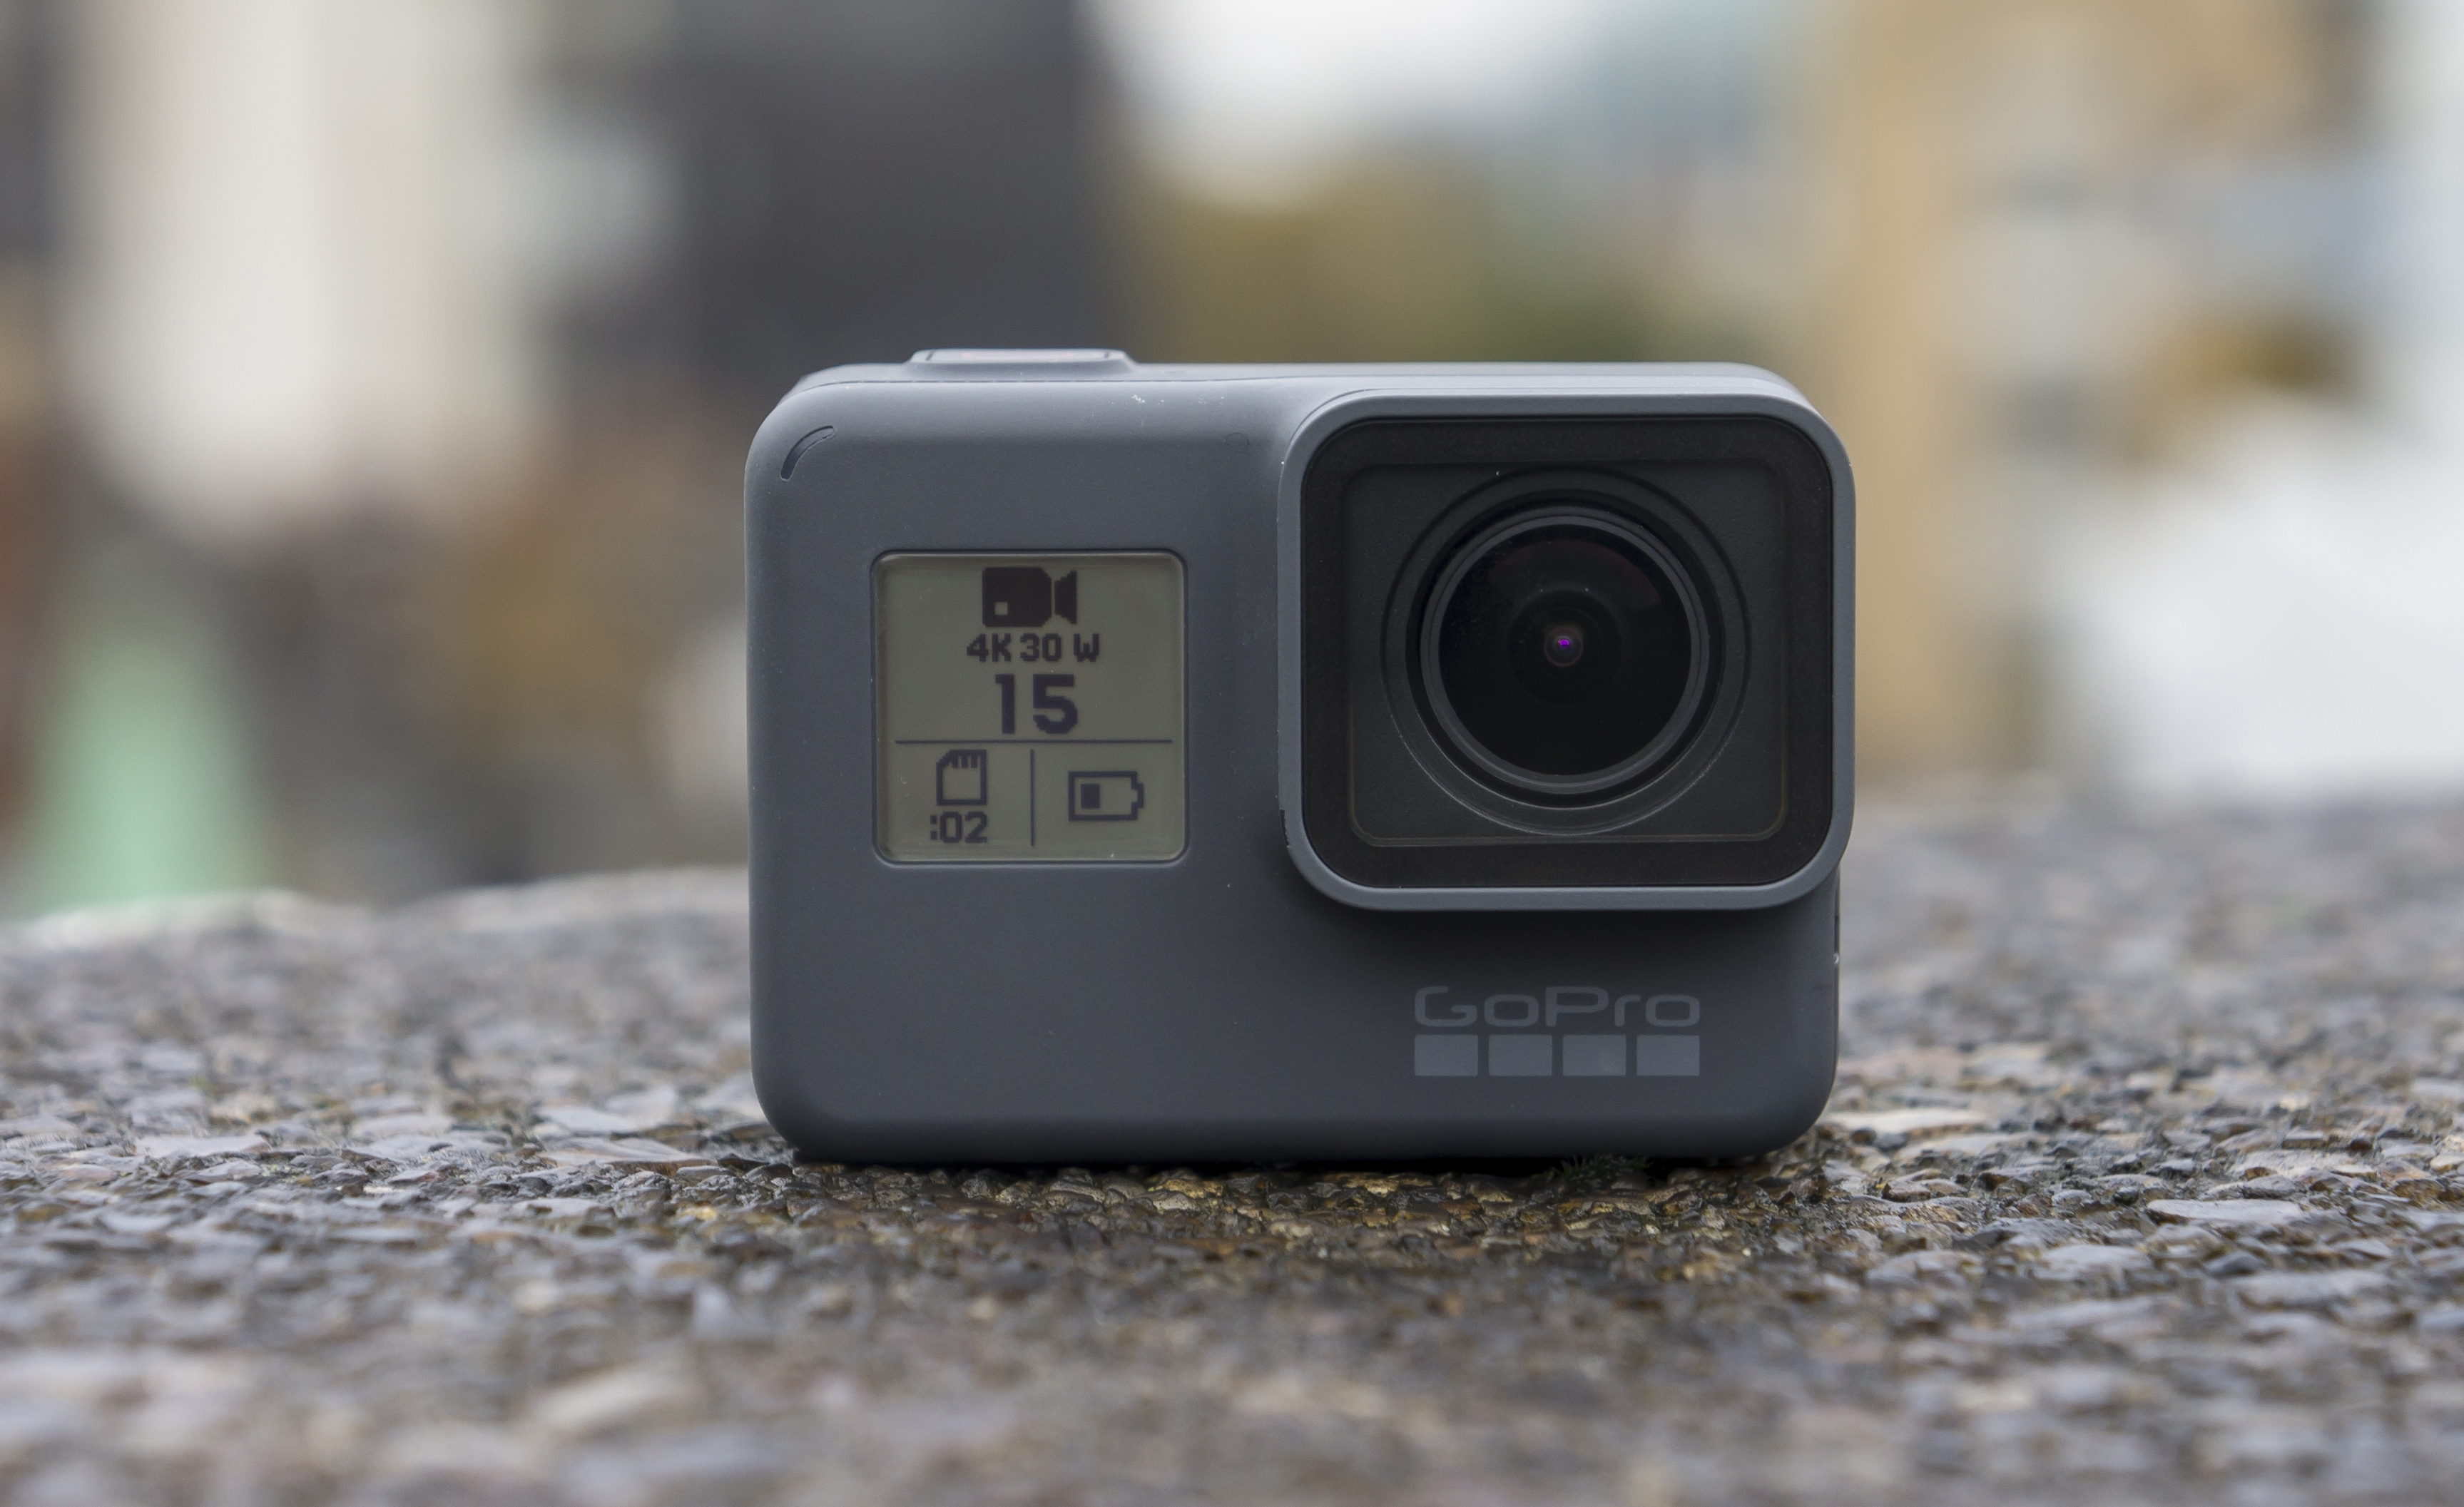 ACTION CAMERA AND ITS ACCESSORIES – NOT JUST SHOOT, RECORD